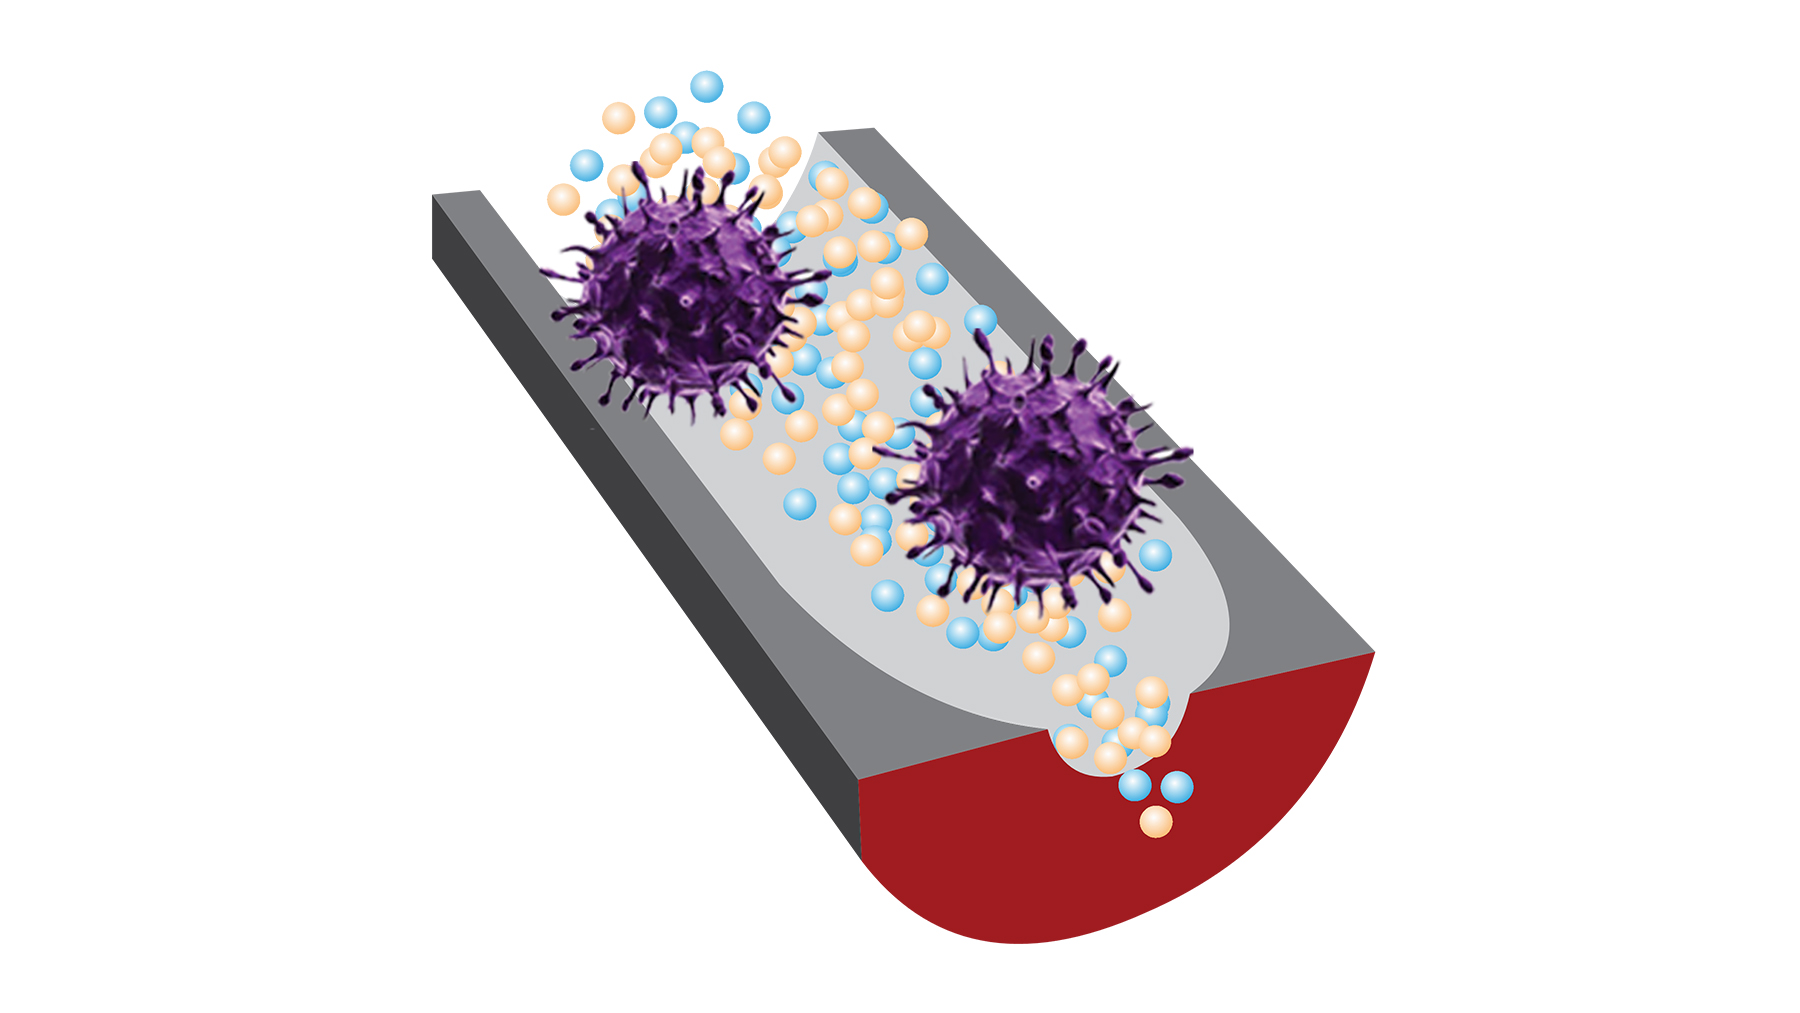 A new sensor can distinguish infectious viruses from noninfectious ones thanks to selective DNA fragments and sensitive nanopore technology. Image courtesy of Ana Peinetti